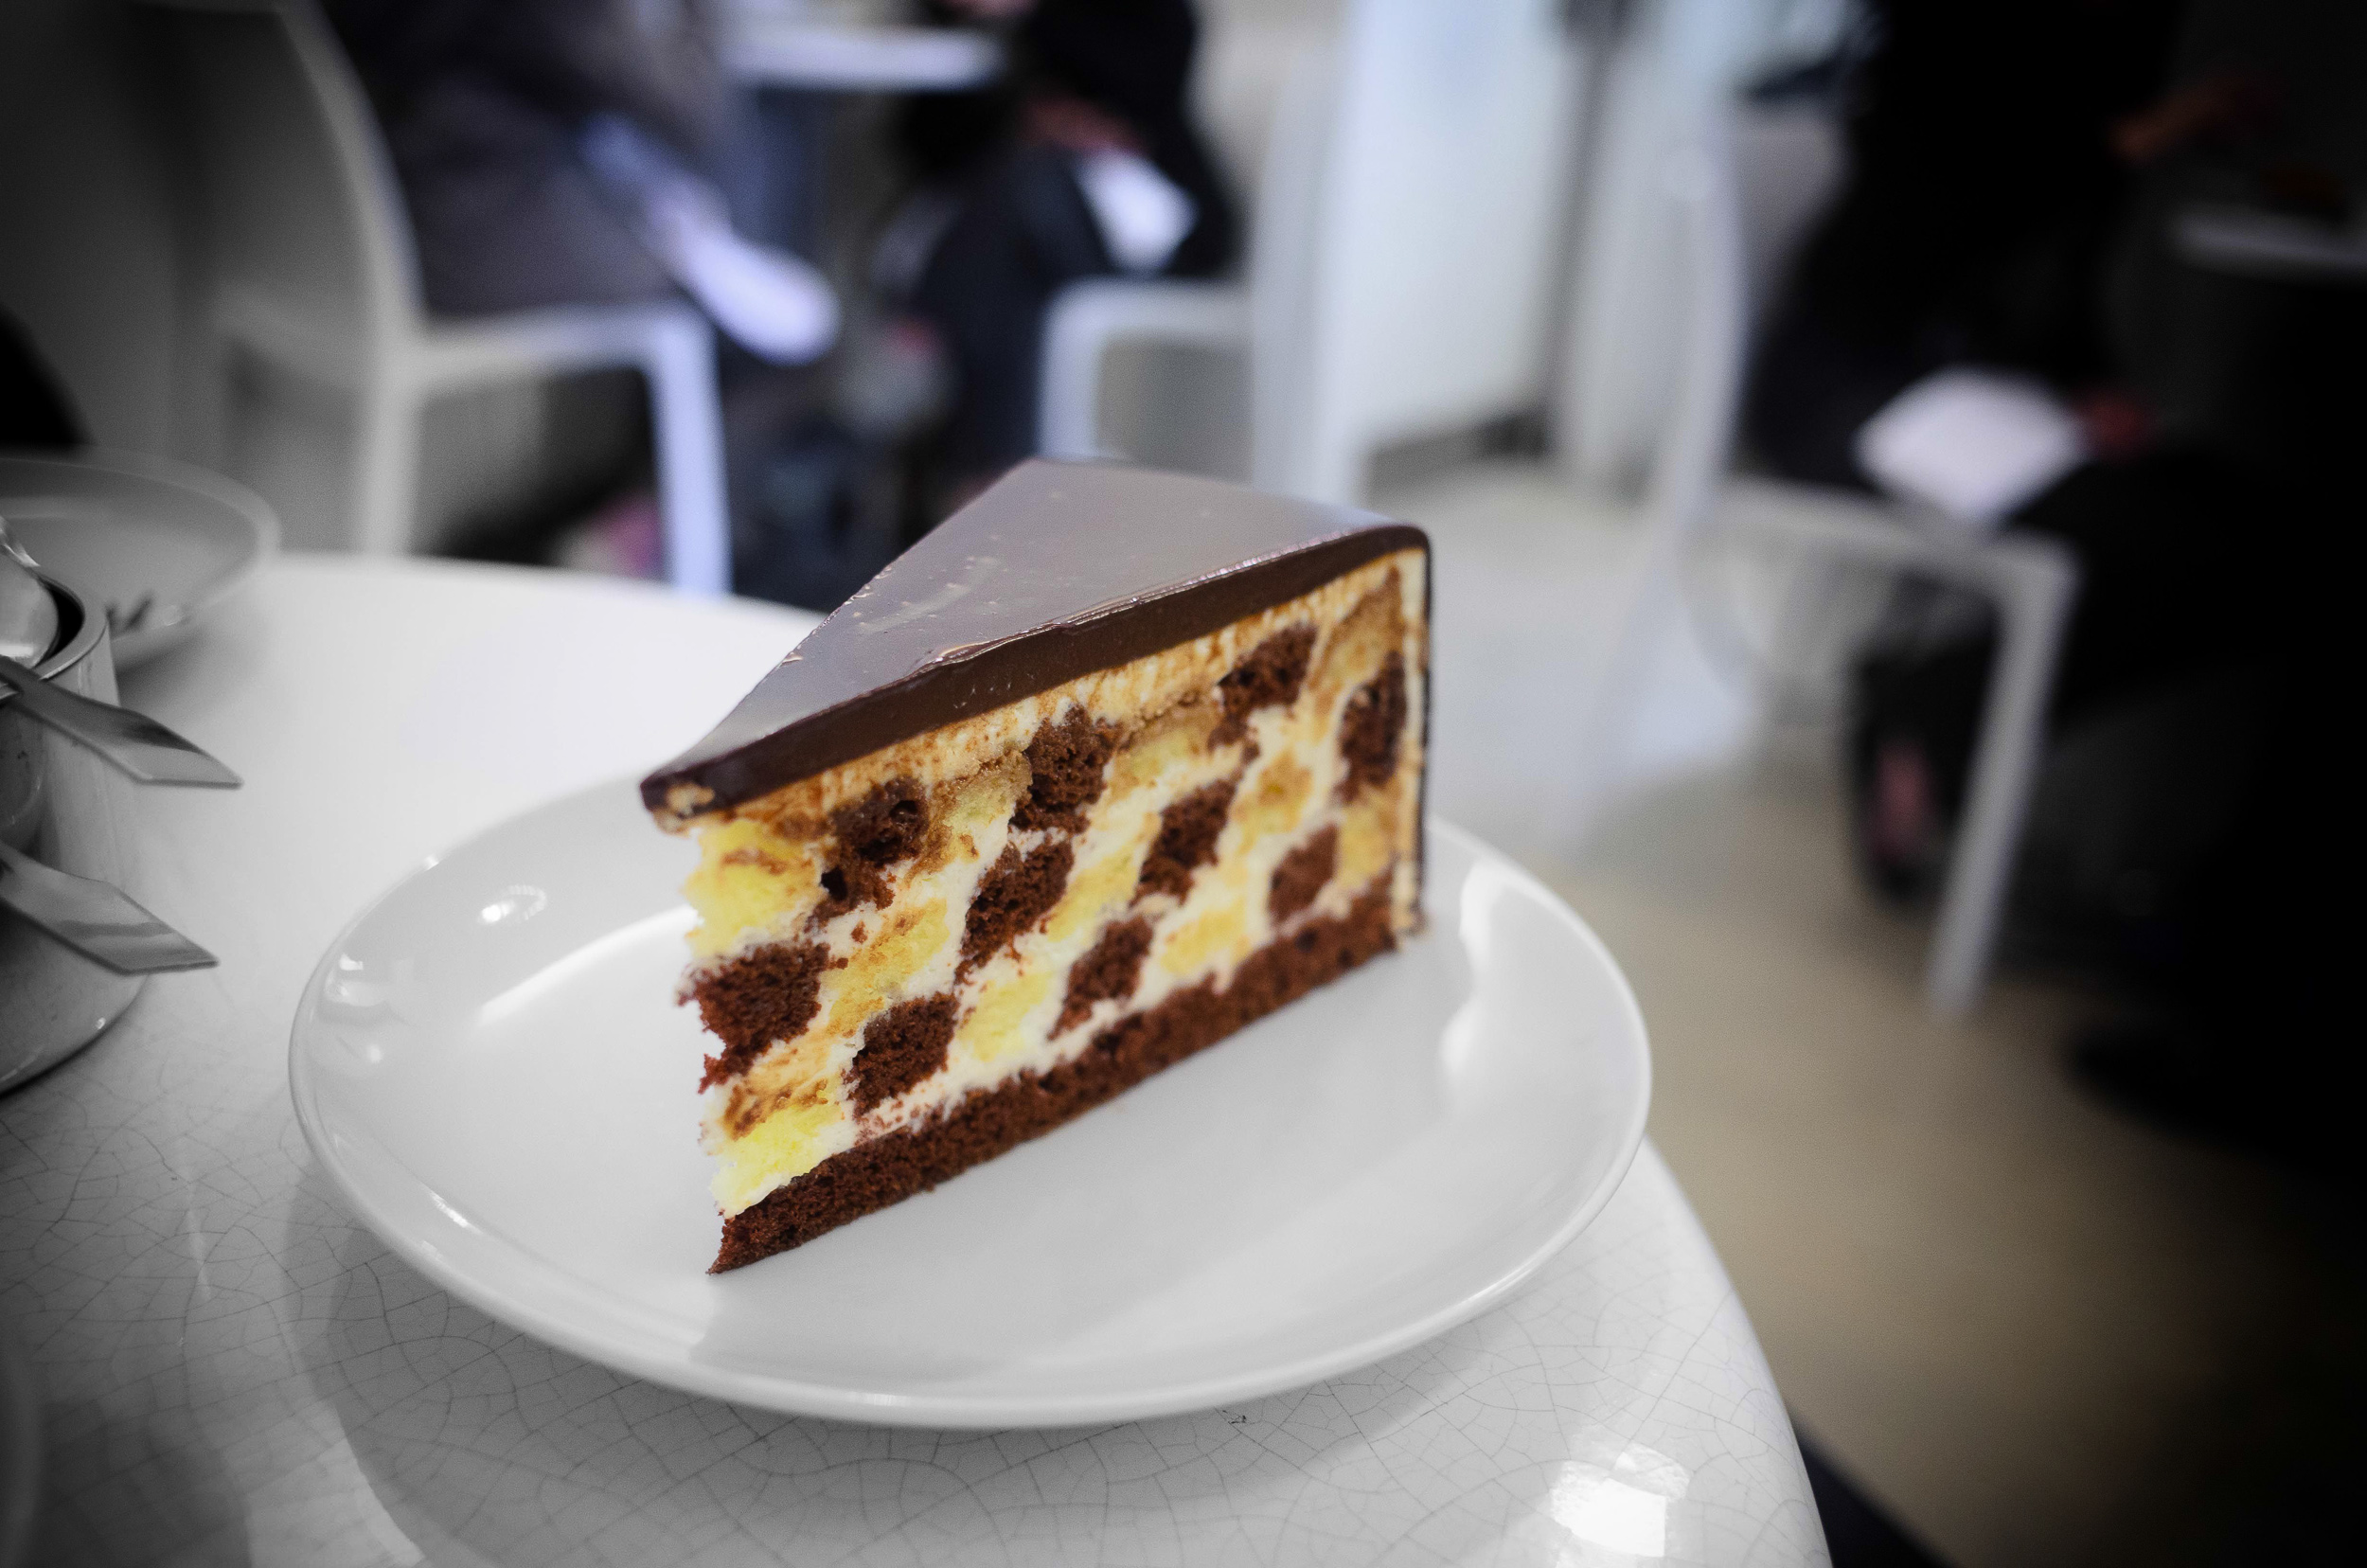 Checkers (vanilla and chocolate sponge cake, whipped cream, choc